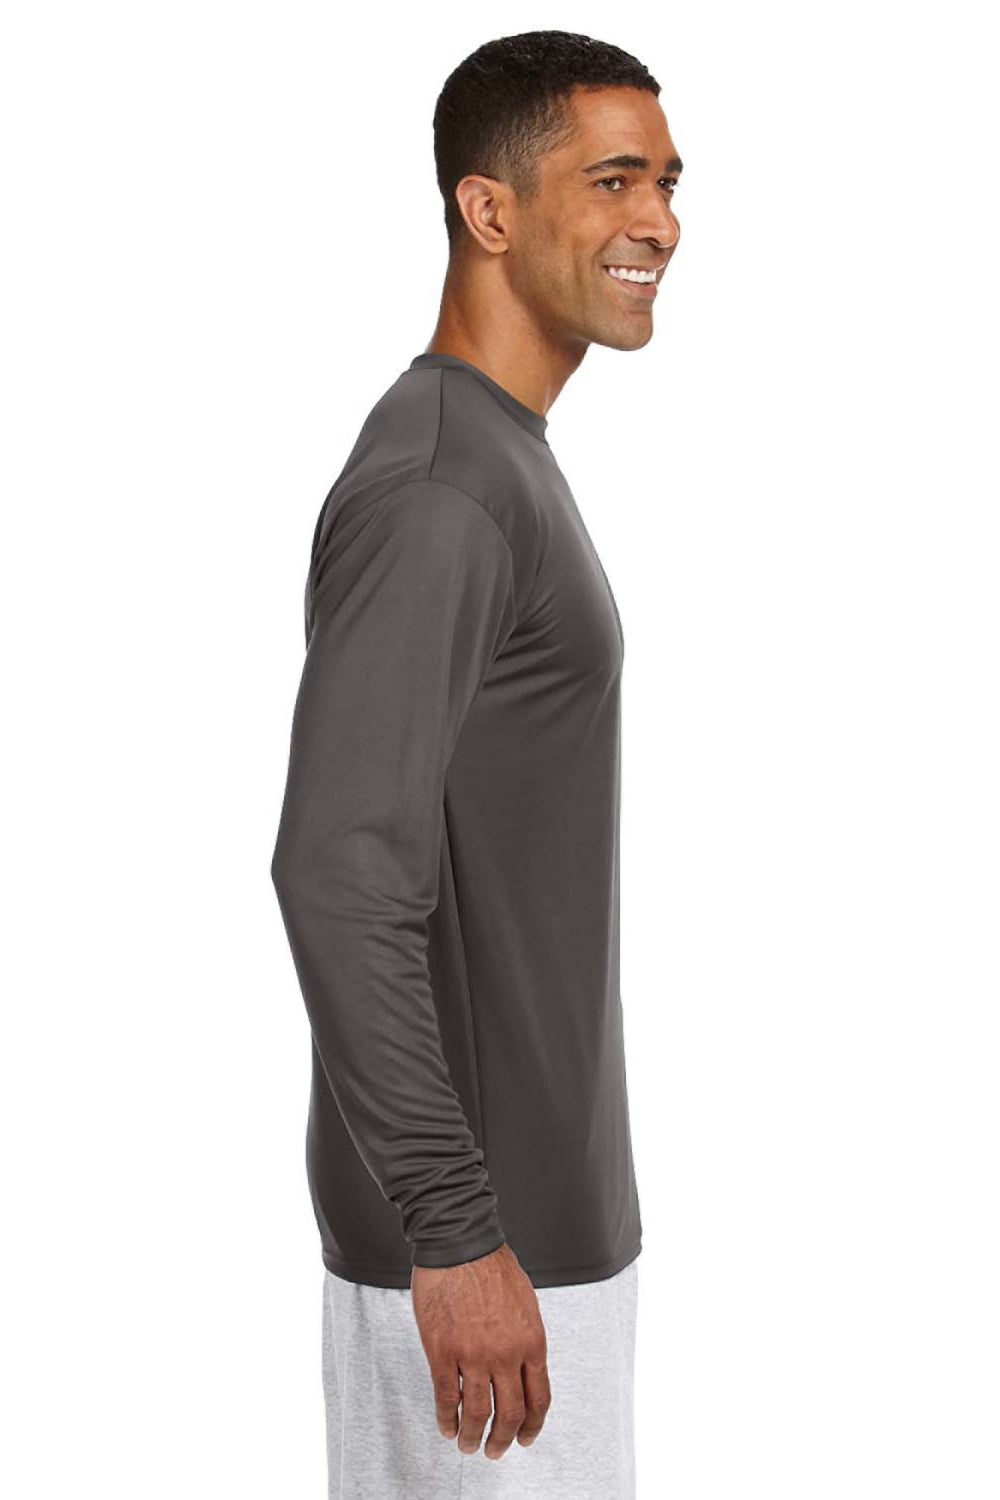 A4 N3165 Mens Cooling Performance Moisture Wicking Long Sleeve Crewneck T-Shirt Graphite Grey Side